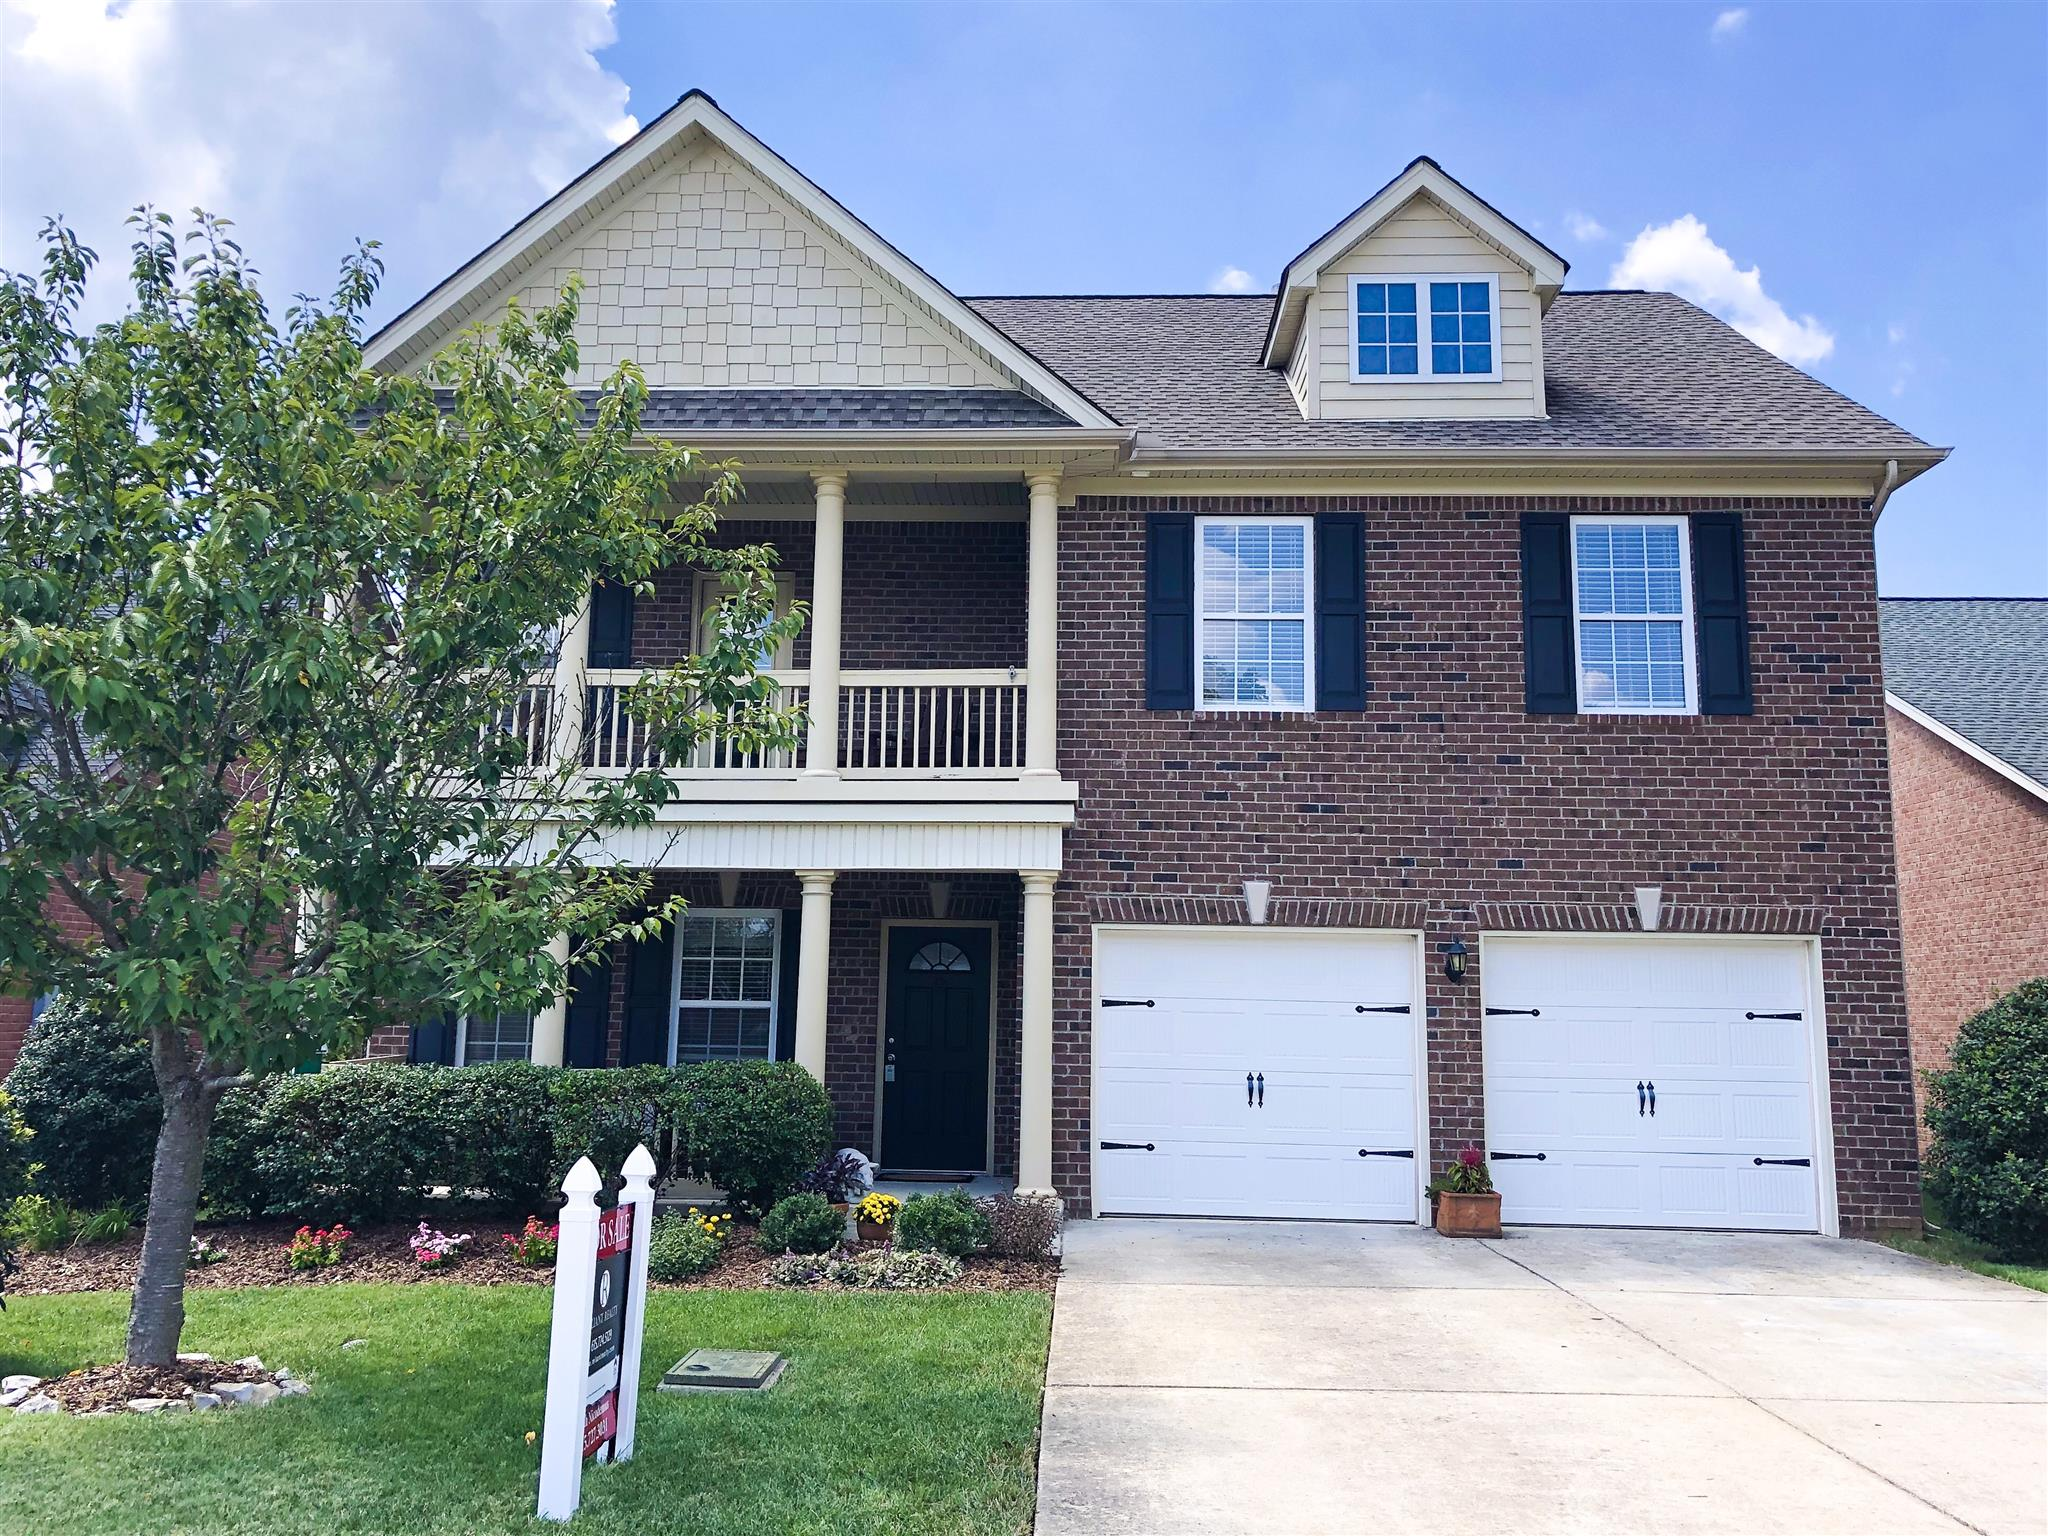 1653 Robindale Dr, Hermitage, TN 37076 - Hermitage, TN real estate listing